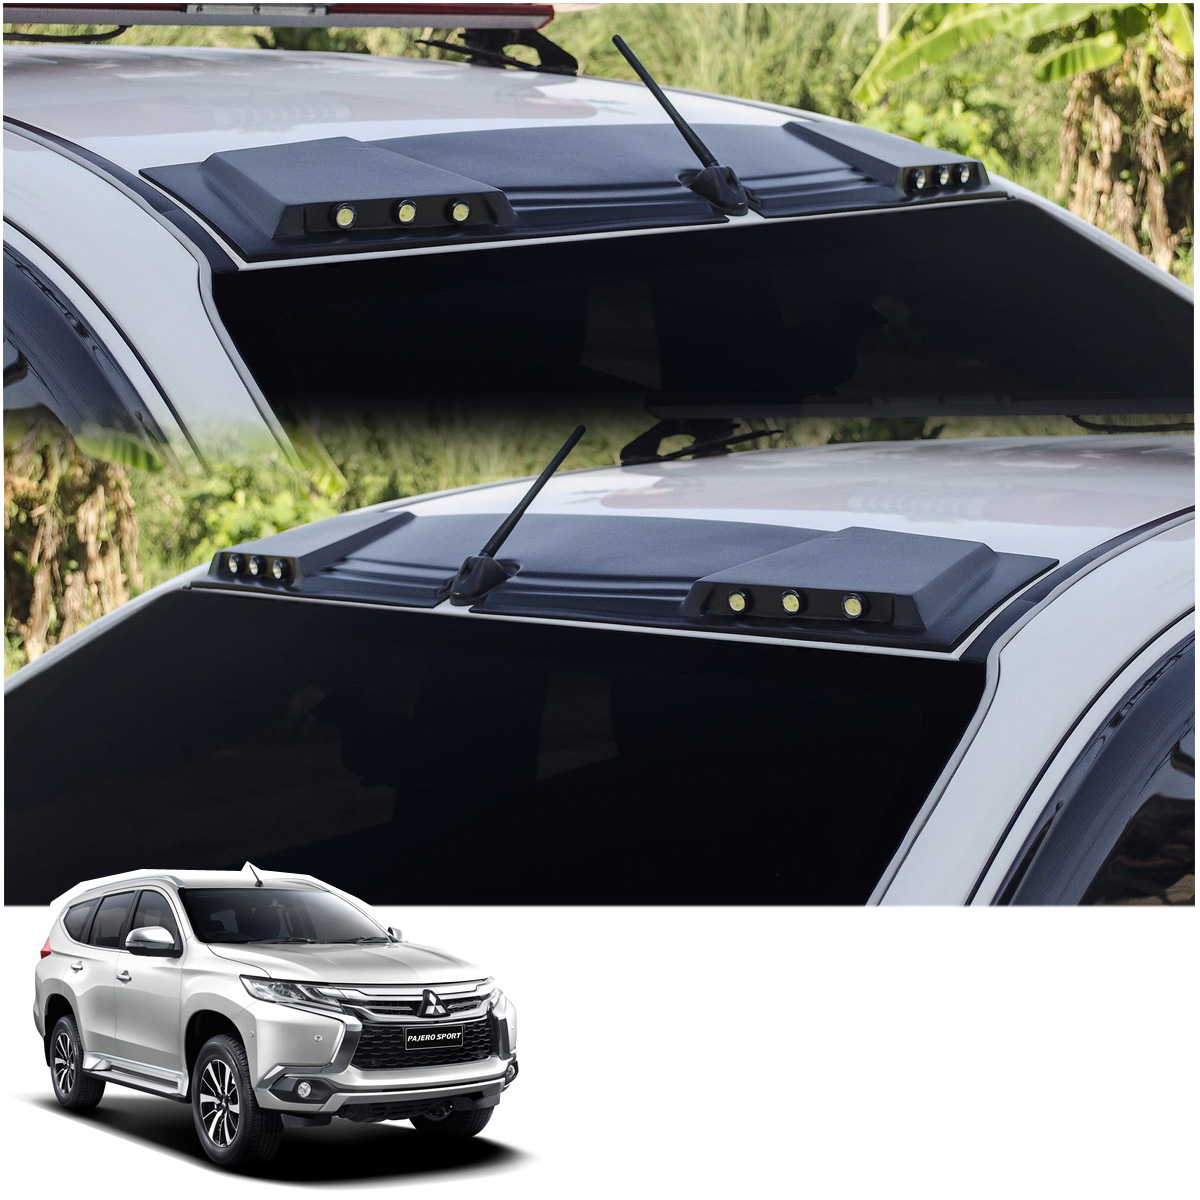 Mitsubishi Sports Car List: Front Leds Roof Gap Spoiler Black Fits Mitsubishi Pajero